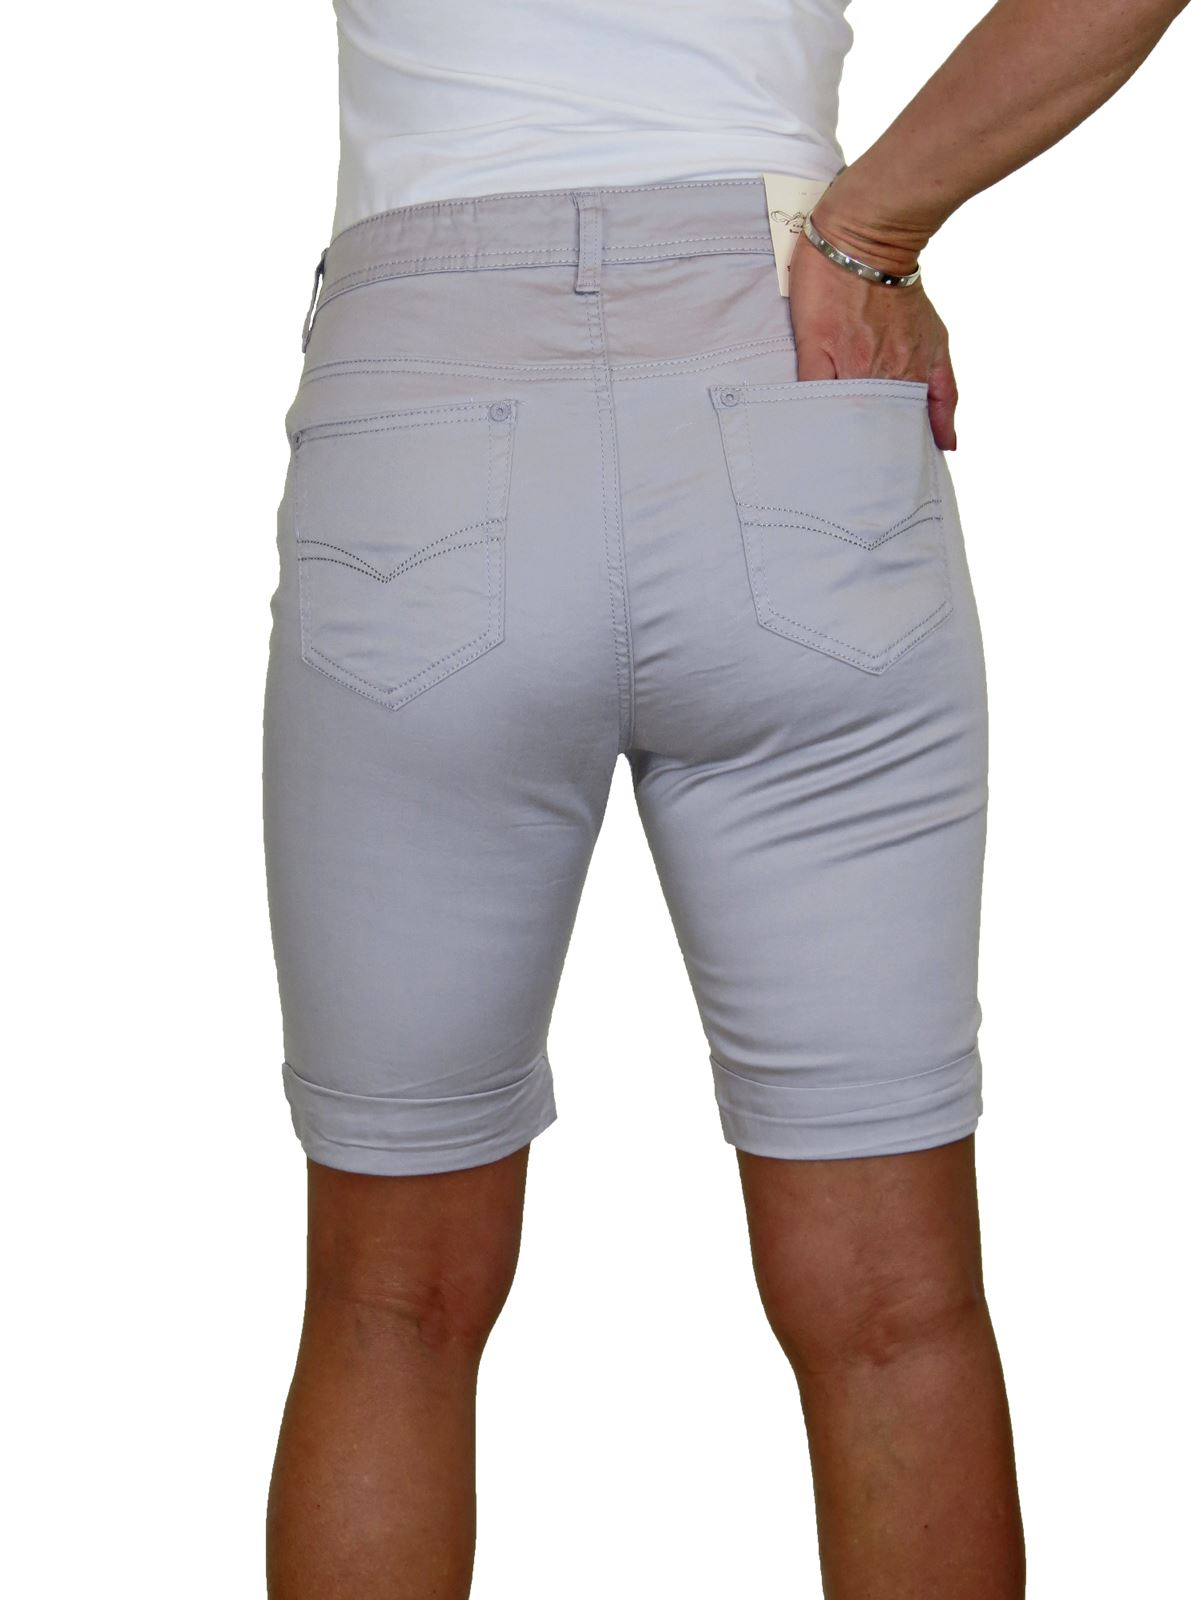 Ladies-Stretch-Stretch-Plus-Size-Jeans-Style-Shorts-Chino-Sheen-14-24 thumbnail 20